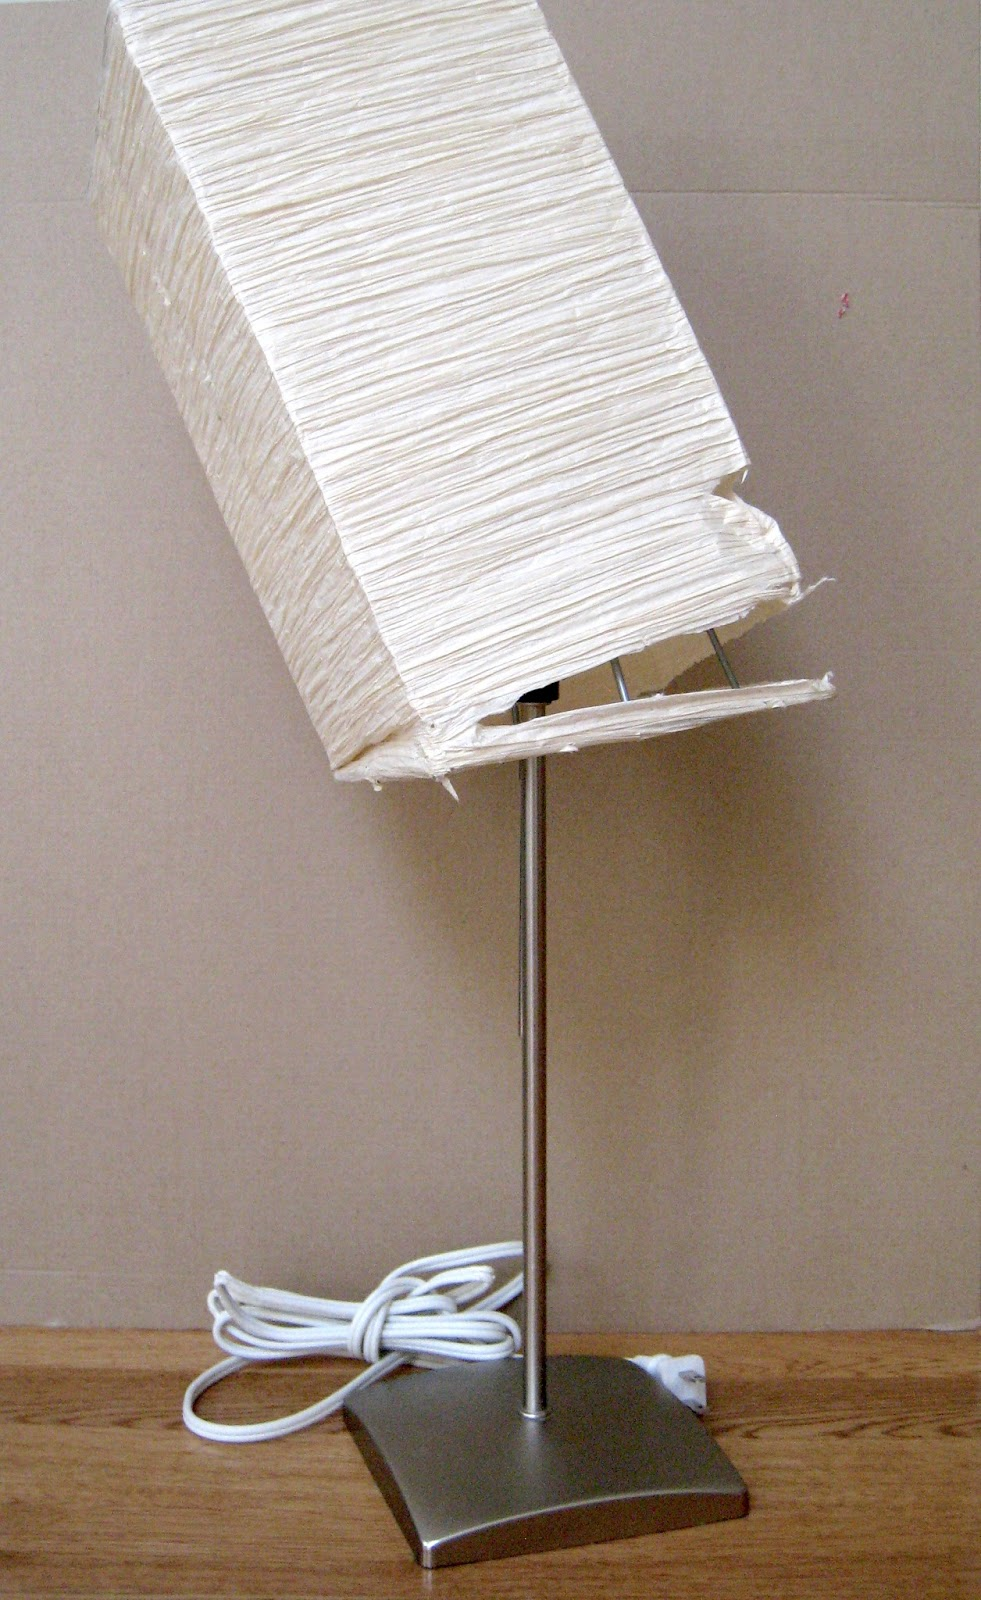 Ikea Floor Lamp Shade Car Essay